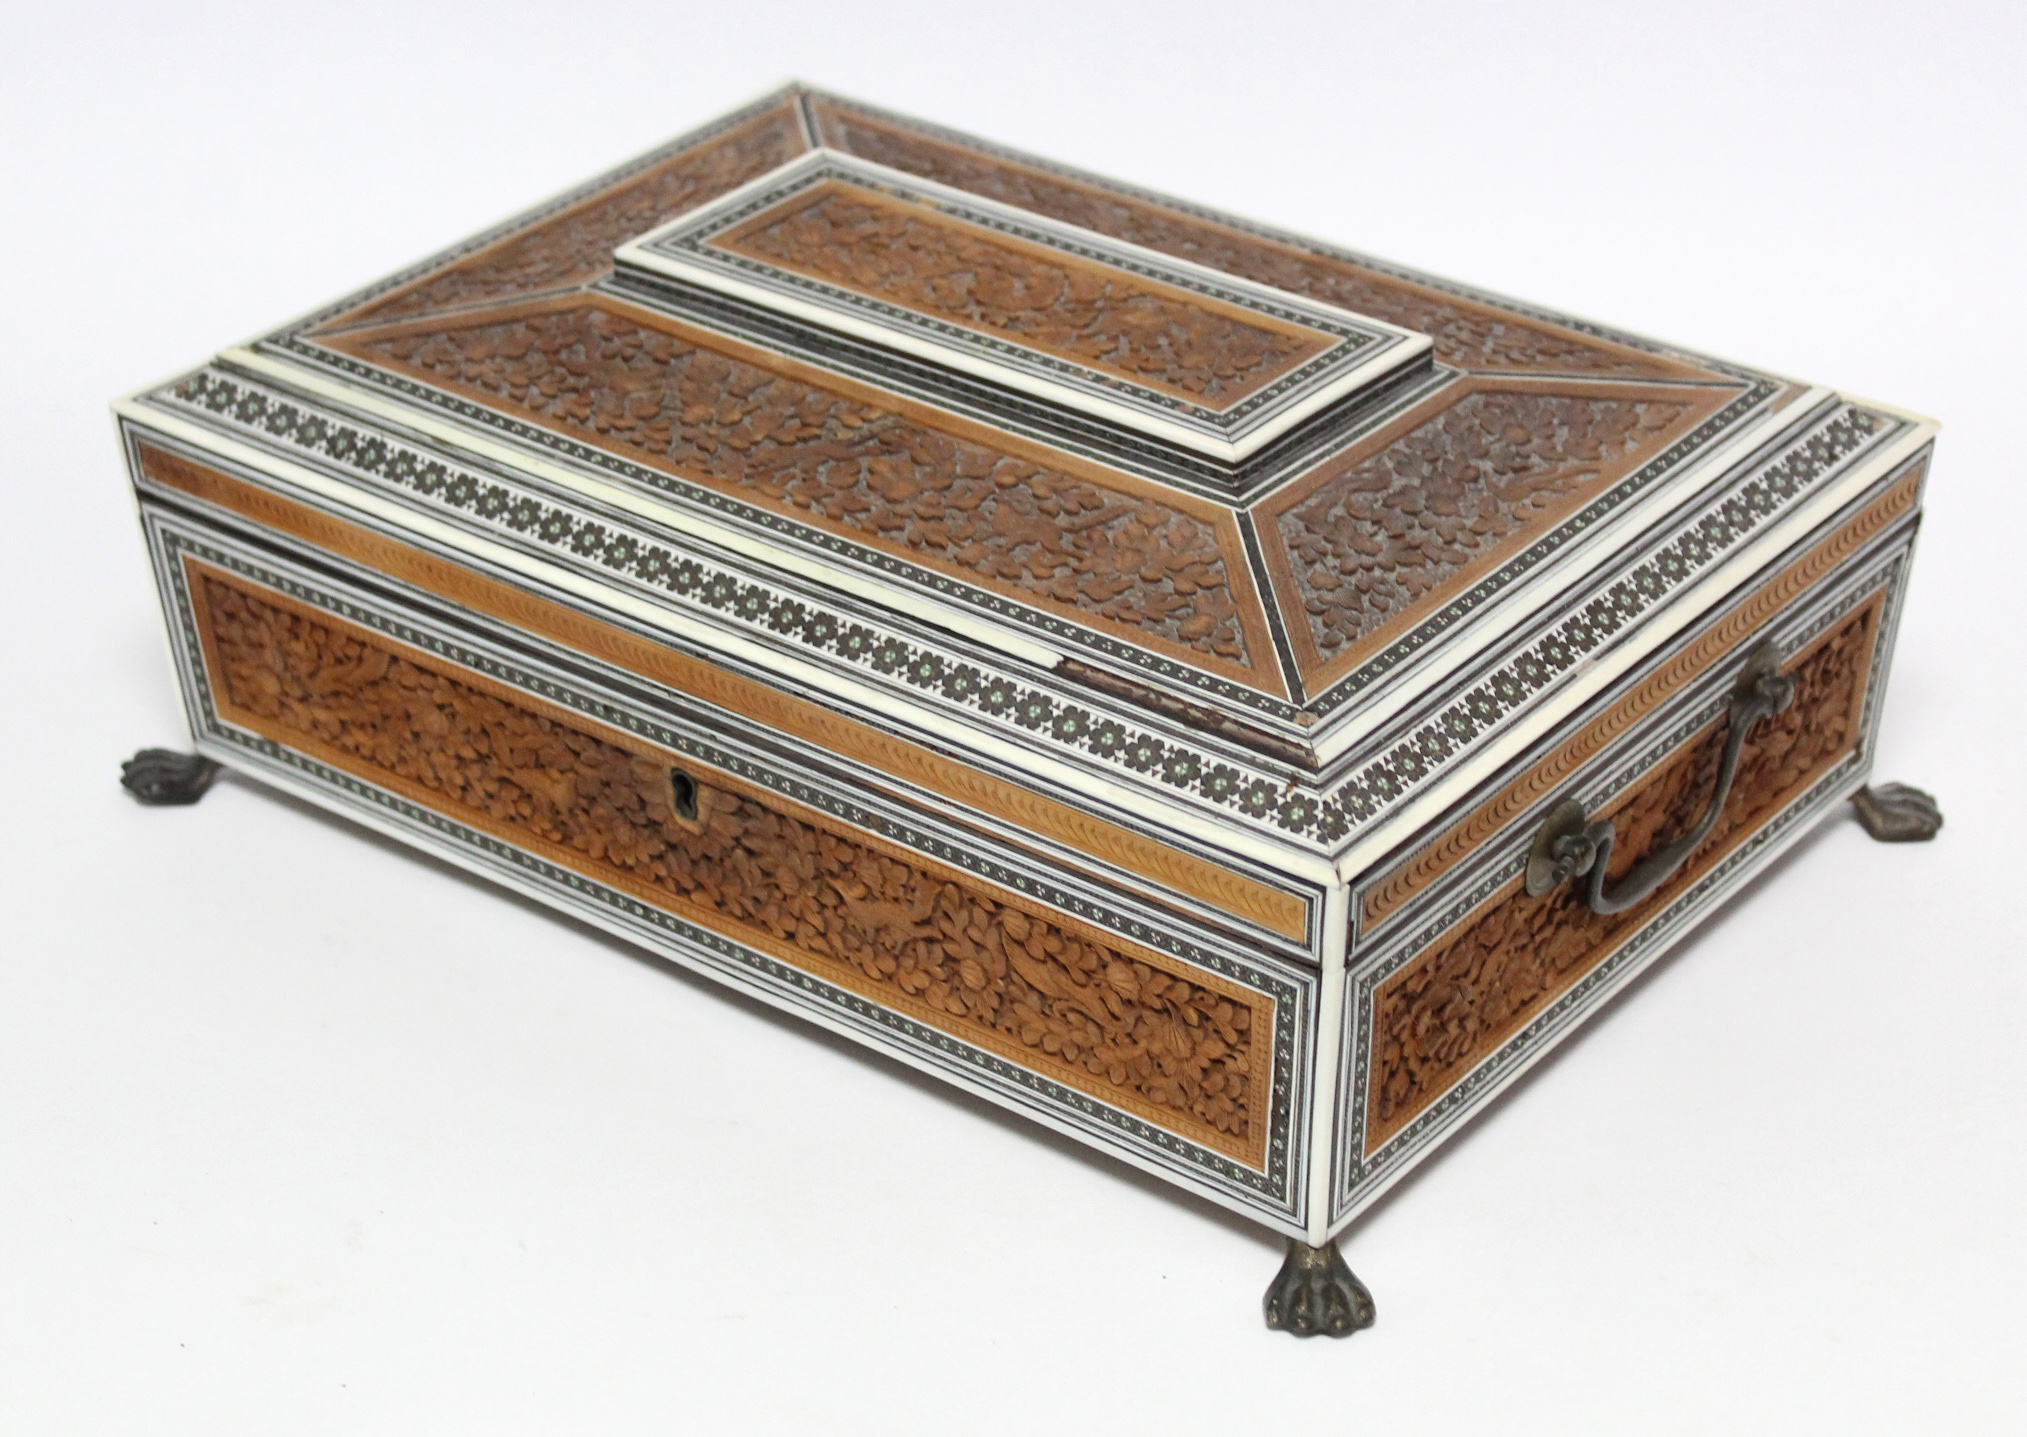 Lot 161 - A 19th century Anglo-Indian sandalwood & ivory needlework box with hinged lid, profusely carved with